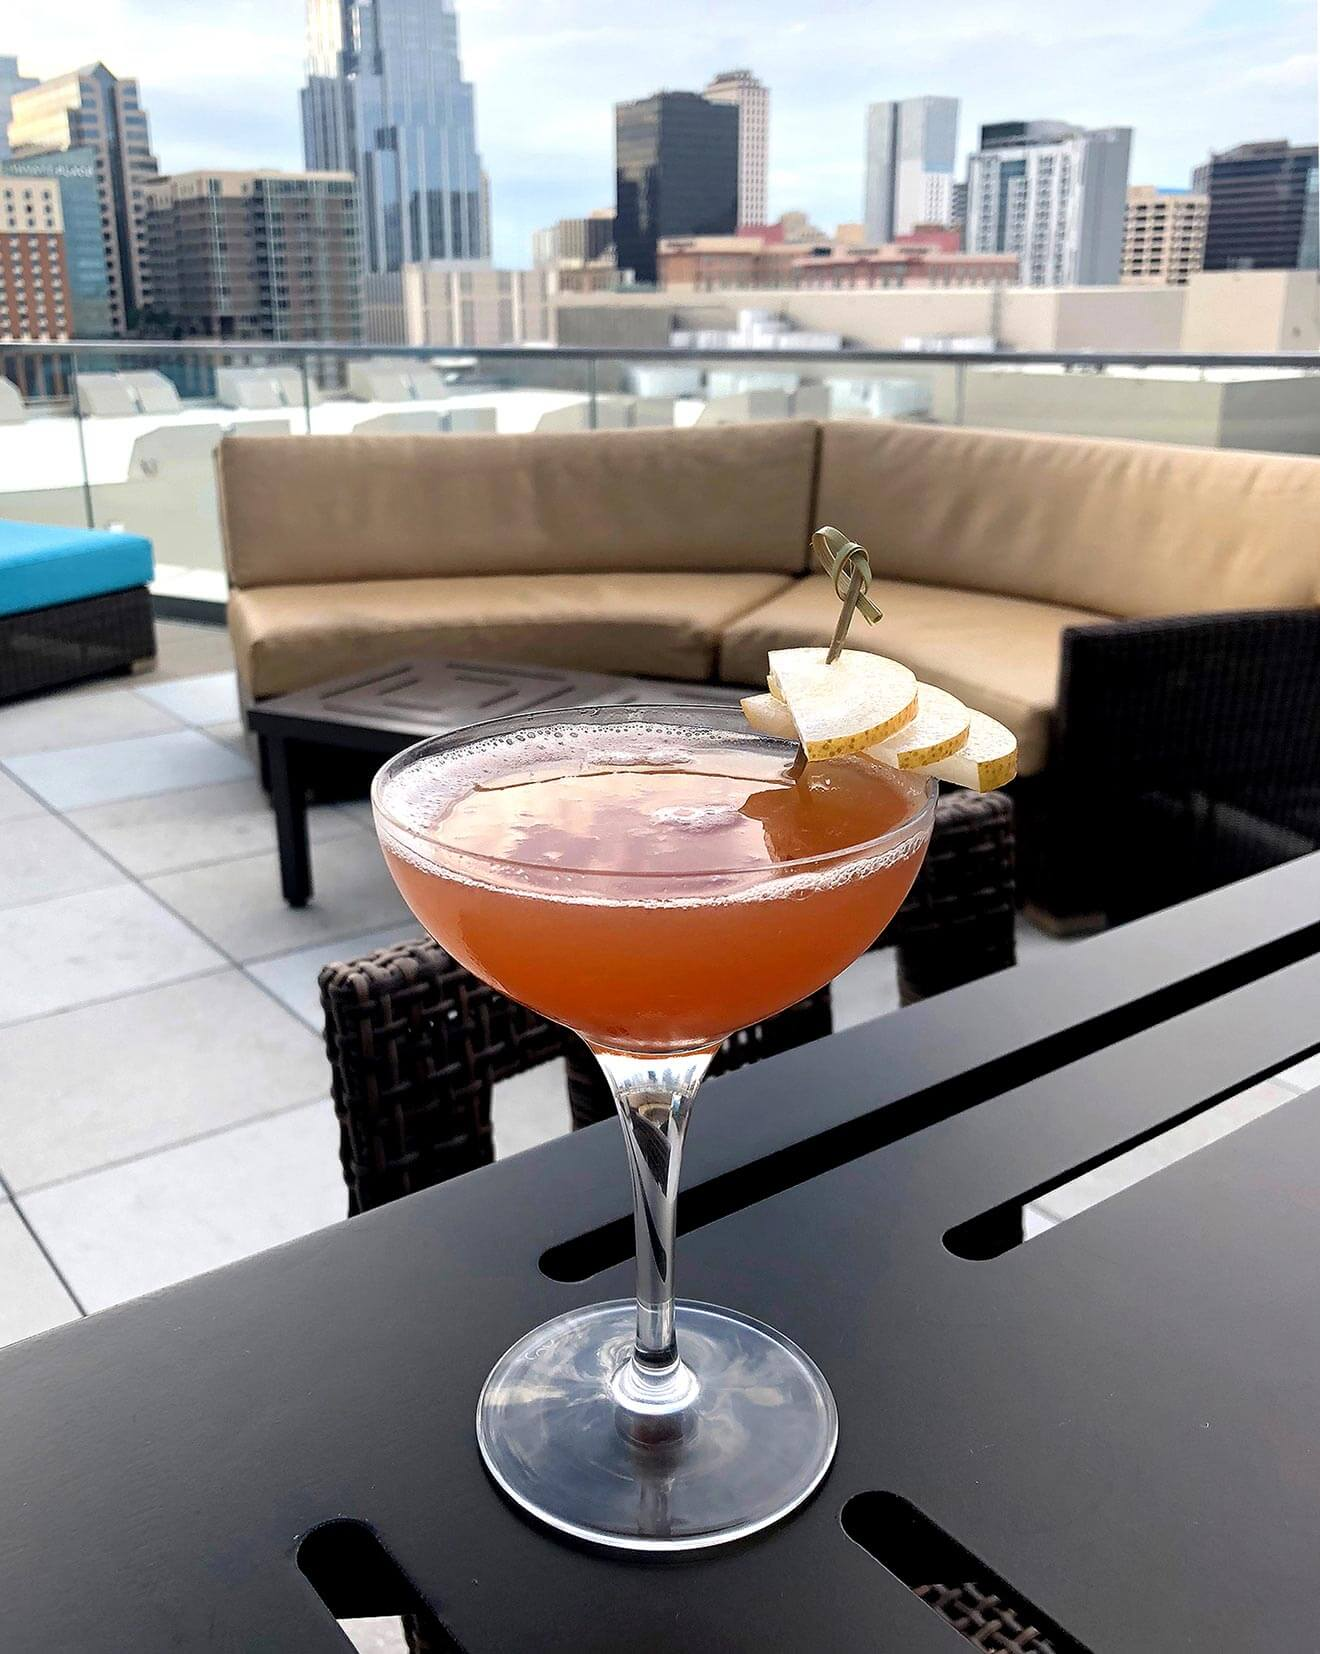 The Golden Hour cocktail on rooftop lounge, city background